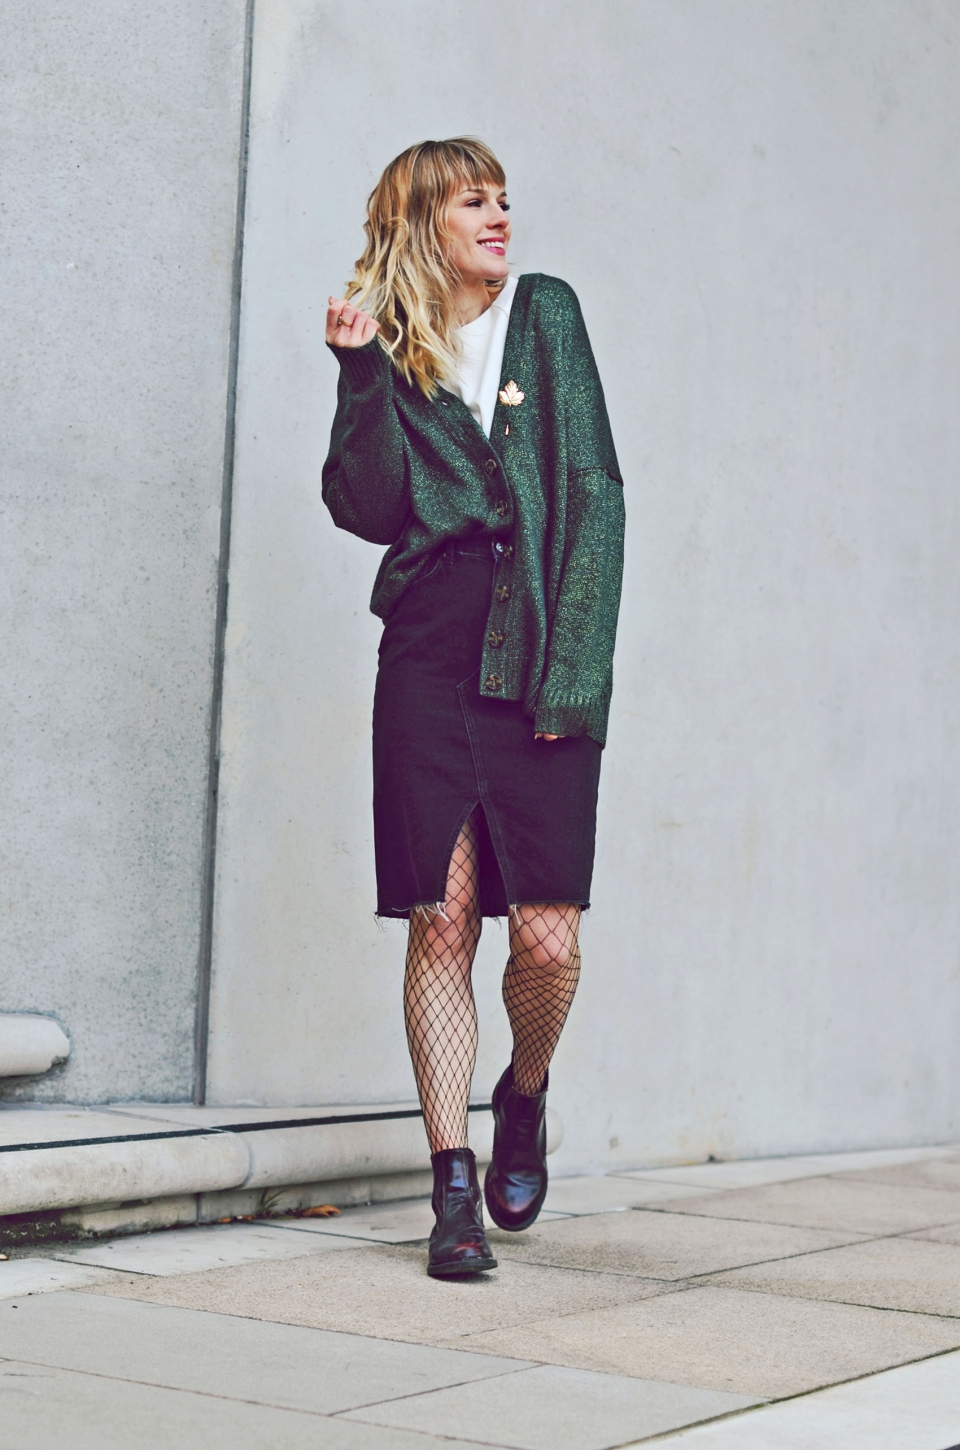 cardigan, skirt, dark denim, fish net, Boots